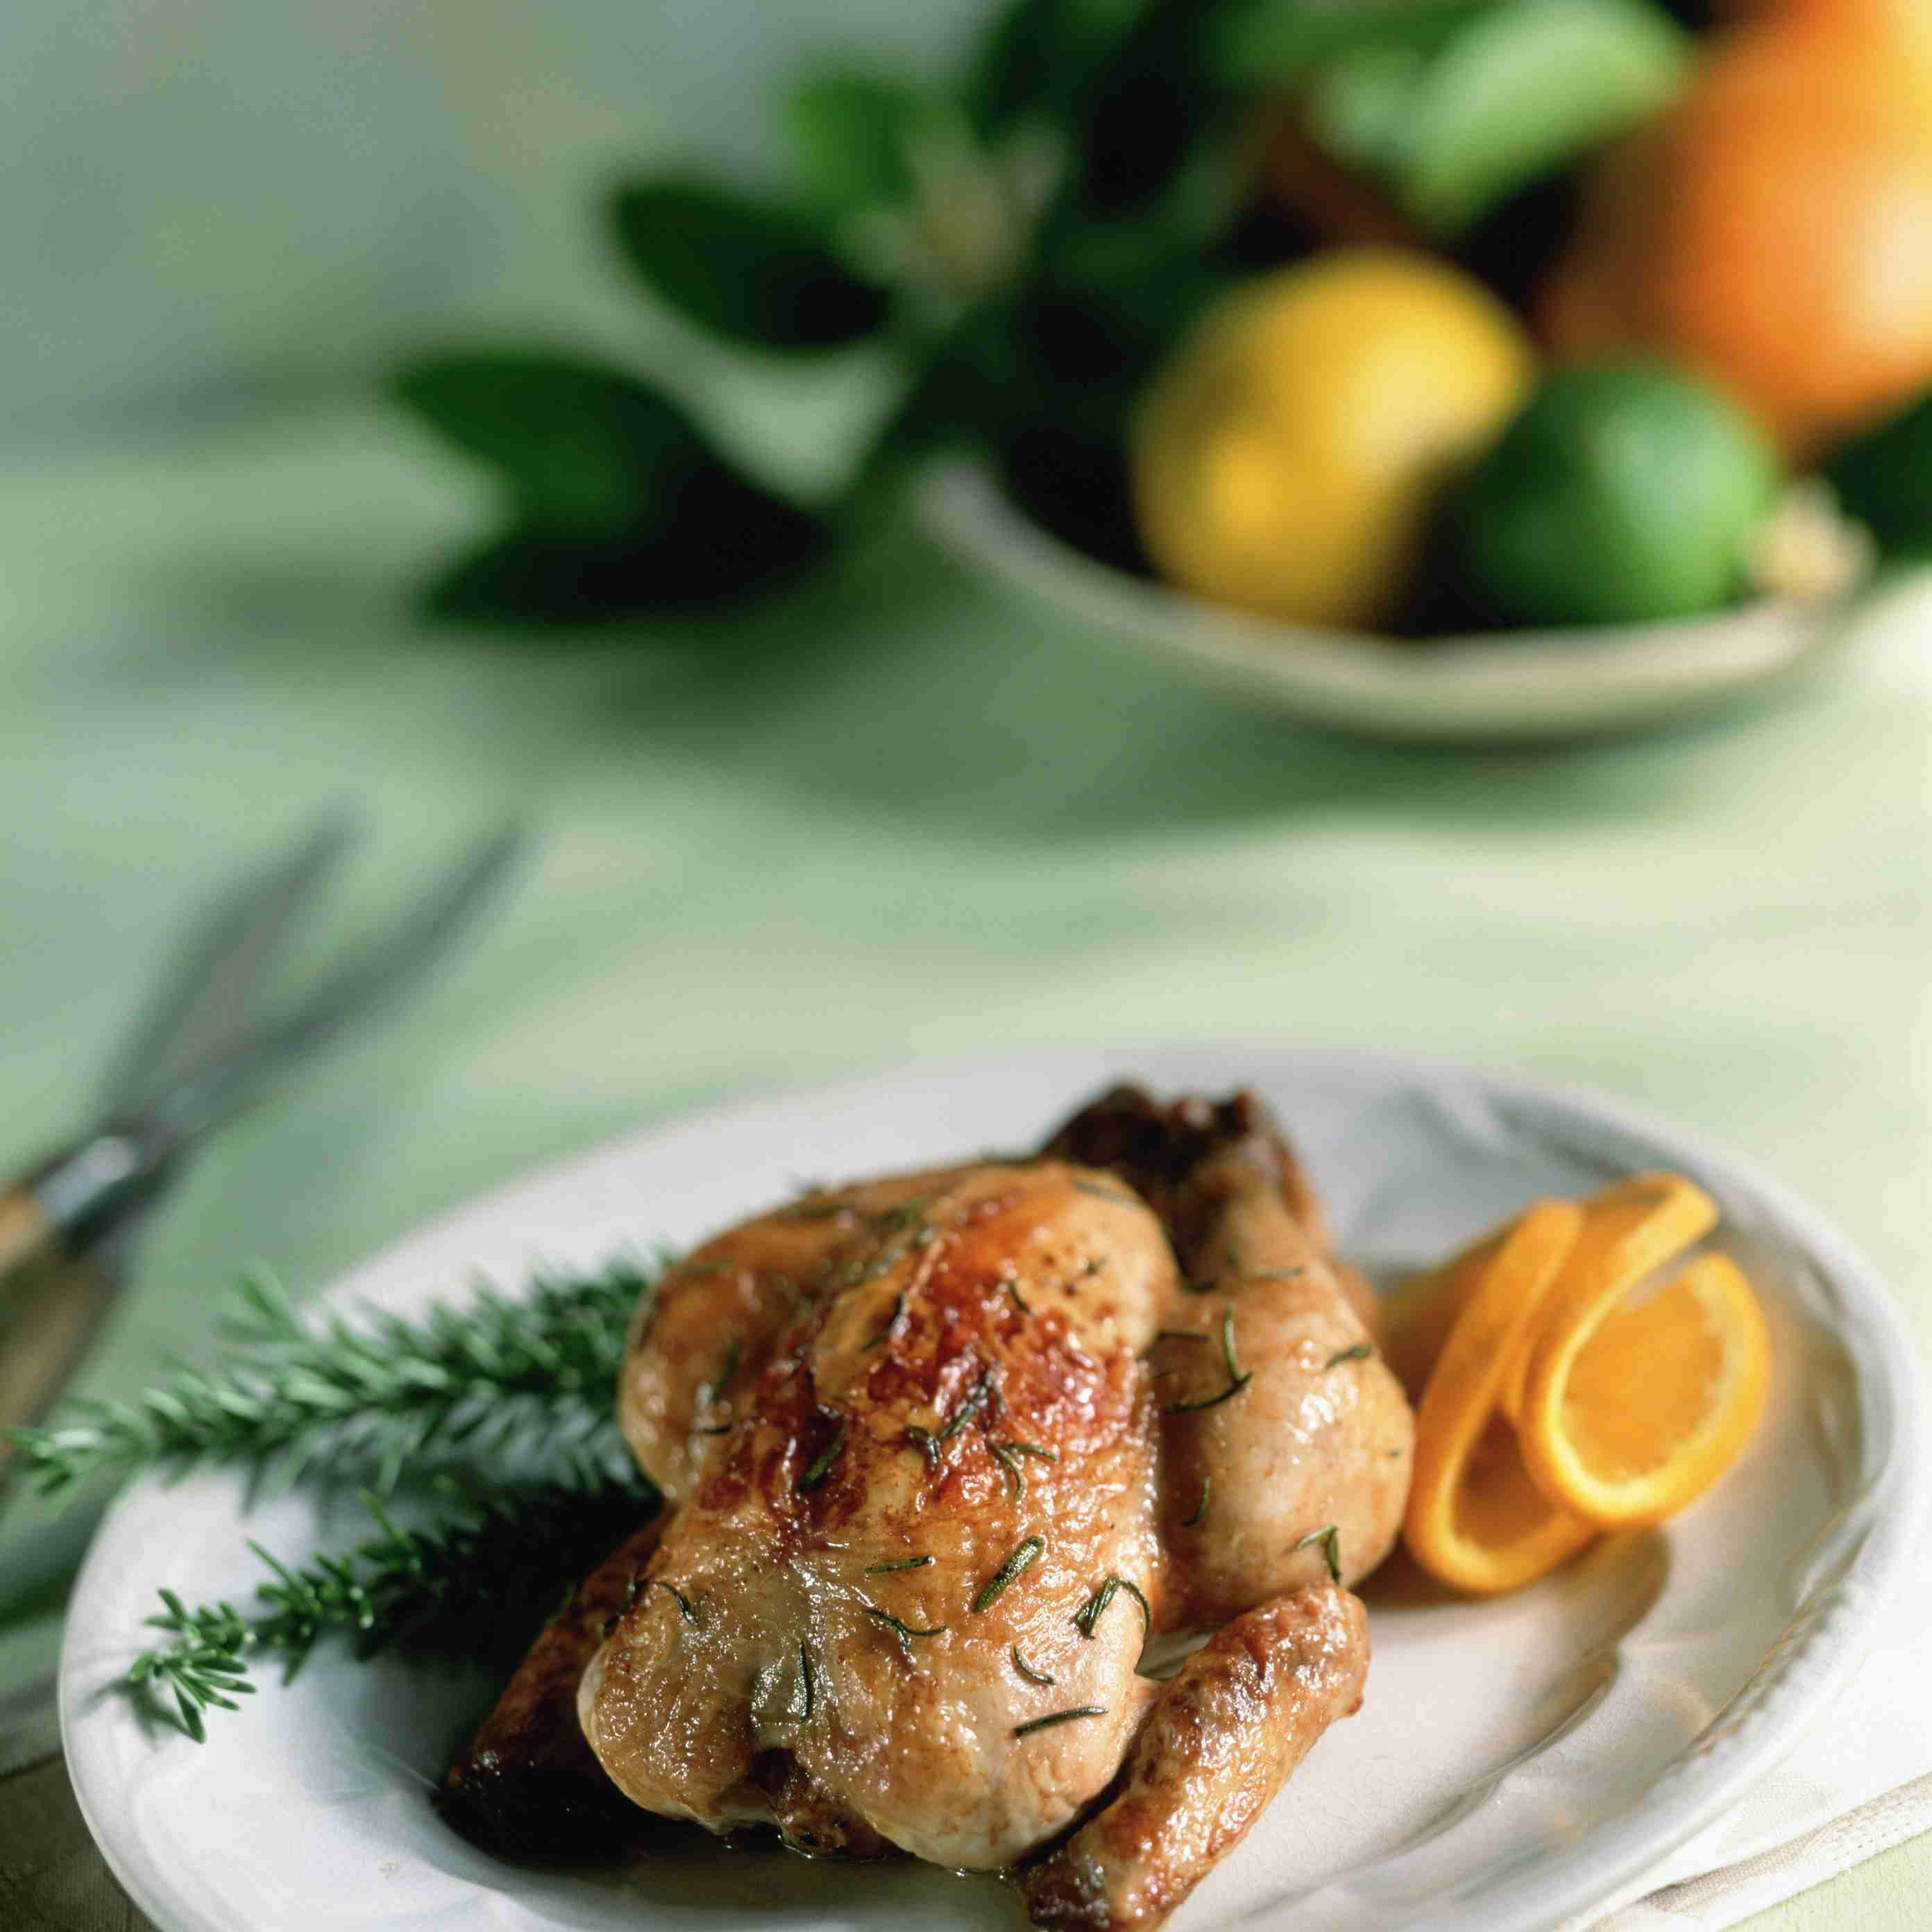 Cornish Game Hen with Rosemary